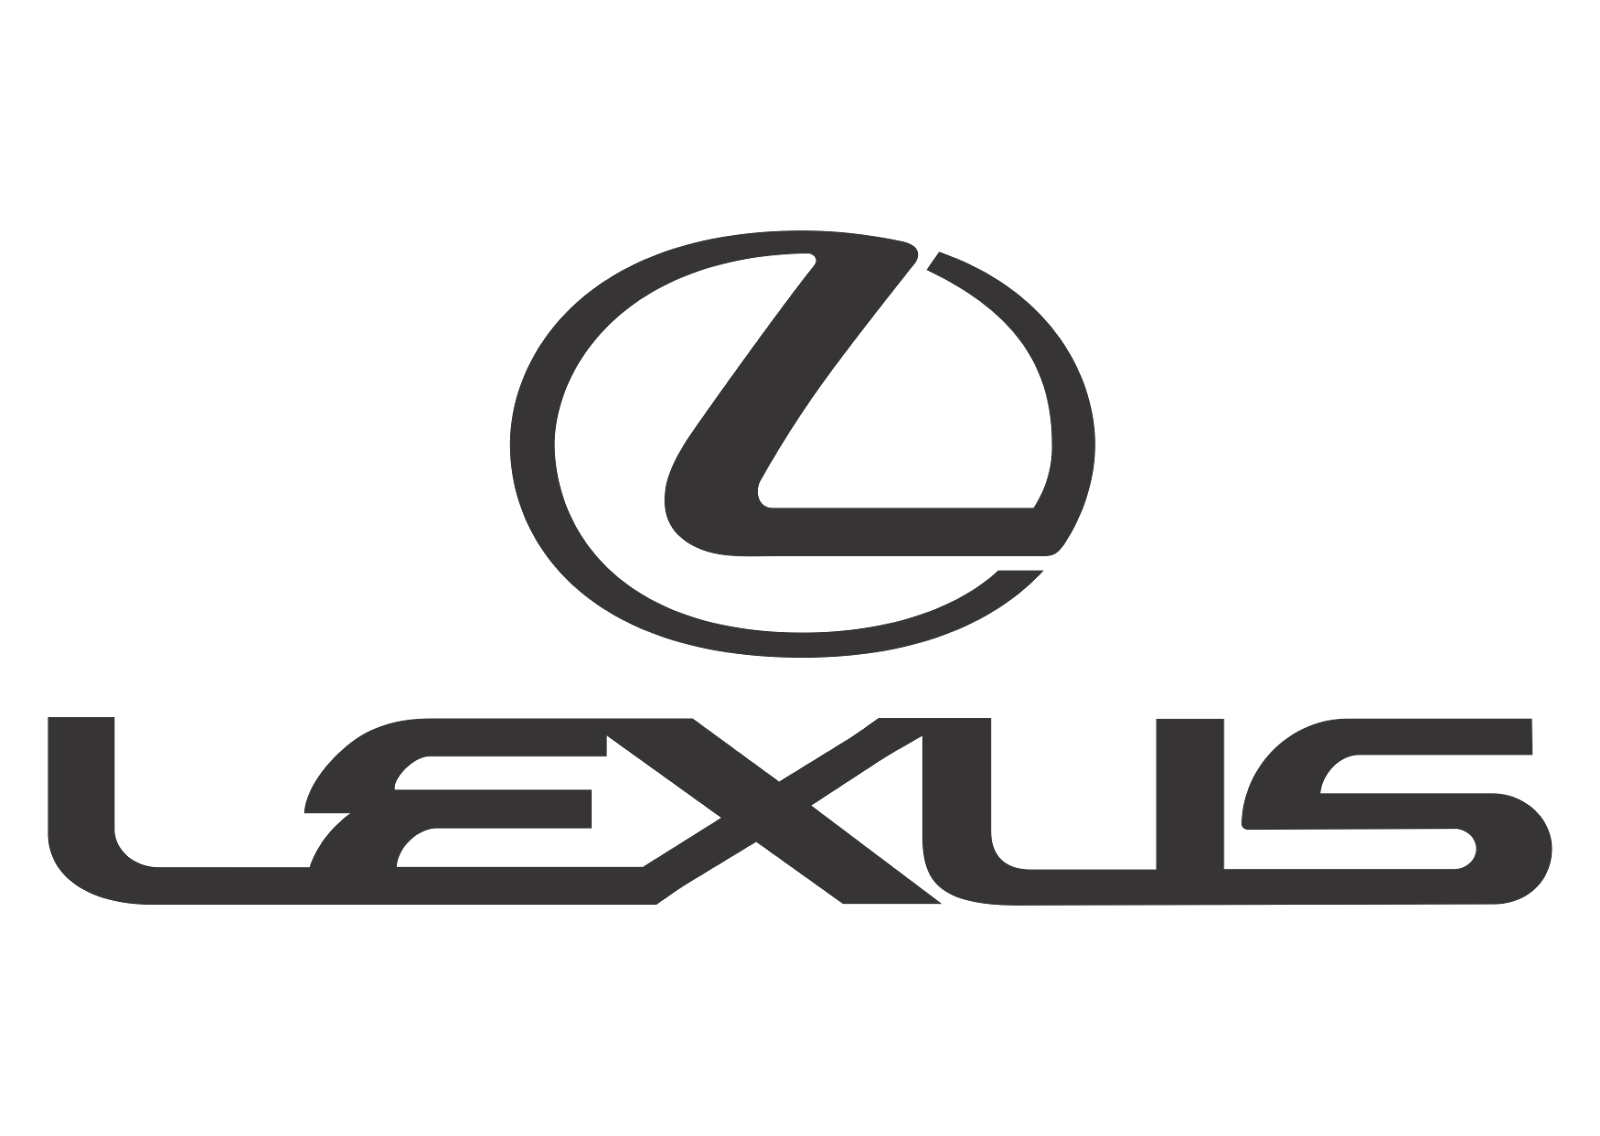 Lexus Logo vector Transparent